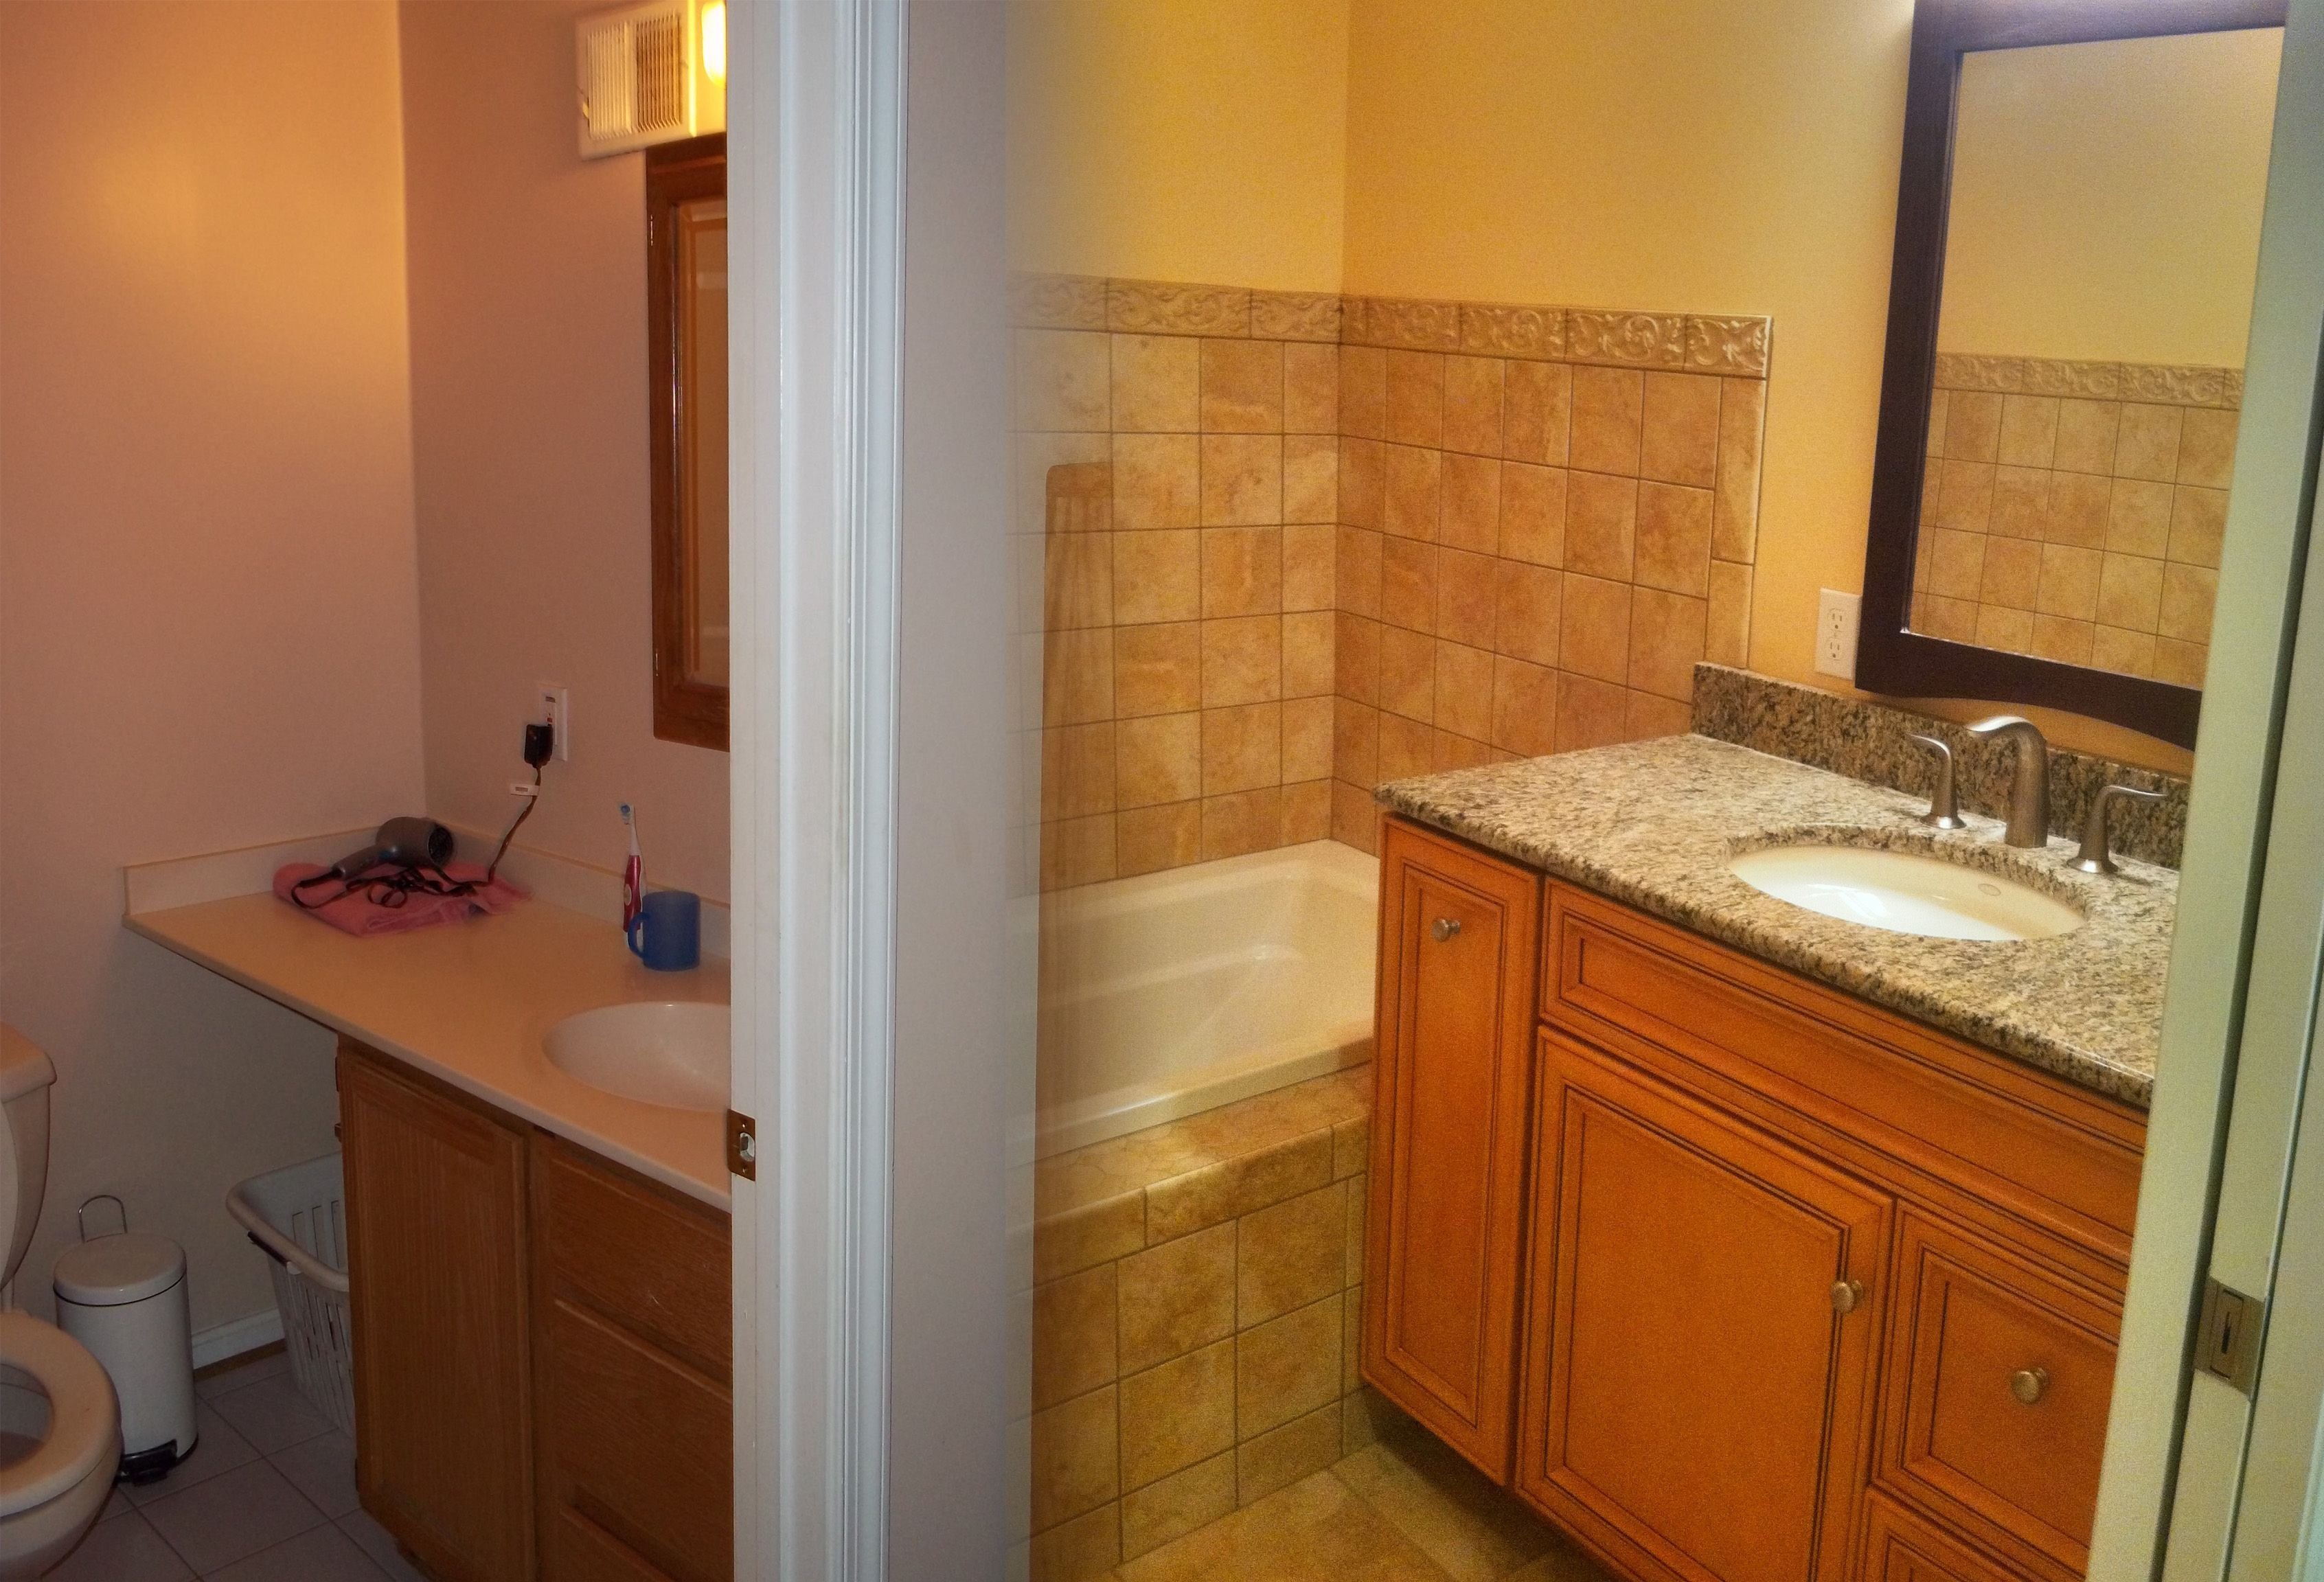 1960s bathroom renovation before and after Bathroom